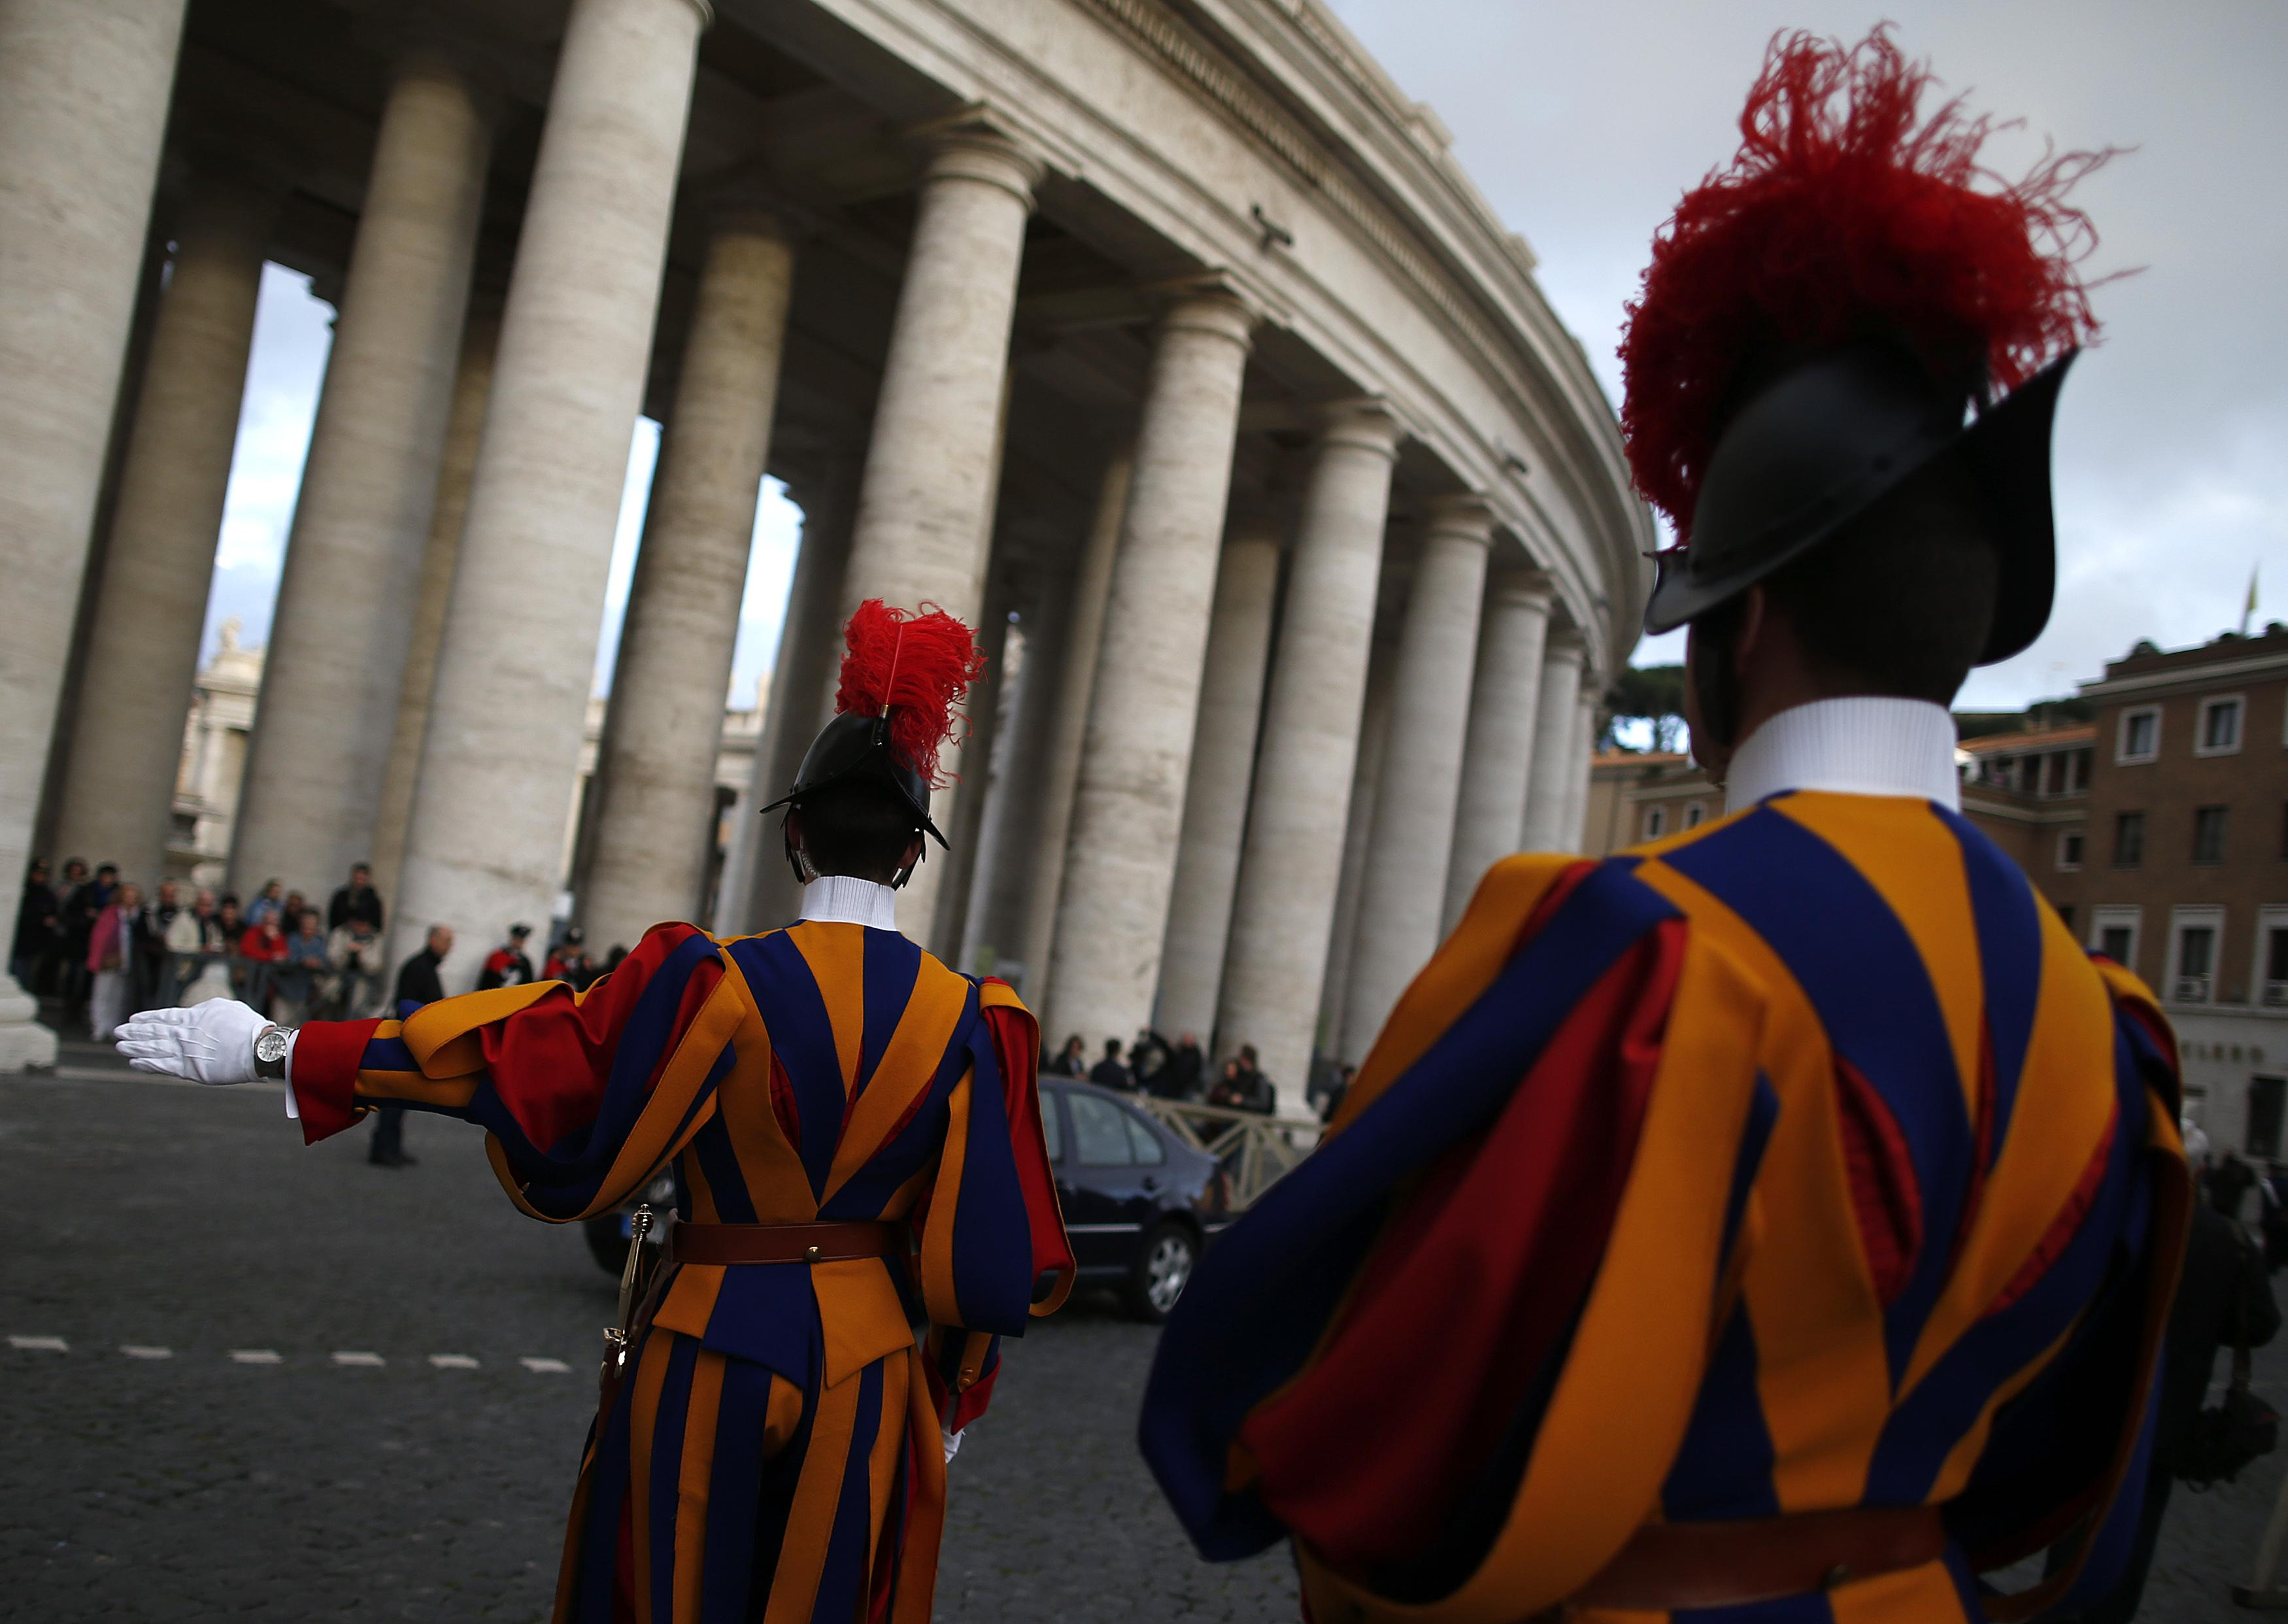 Swiss Guards in St. Peter's square